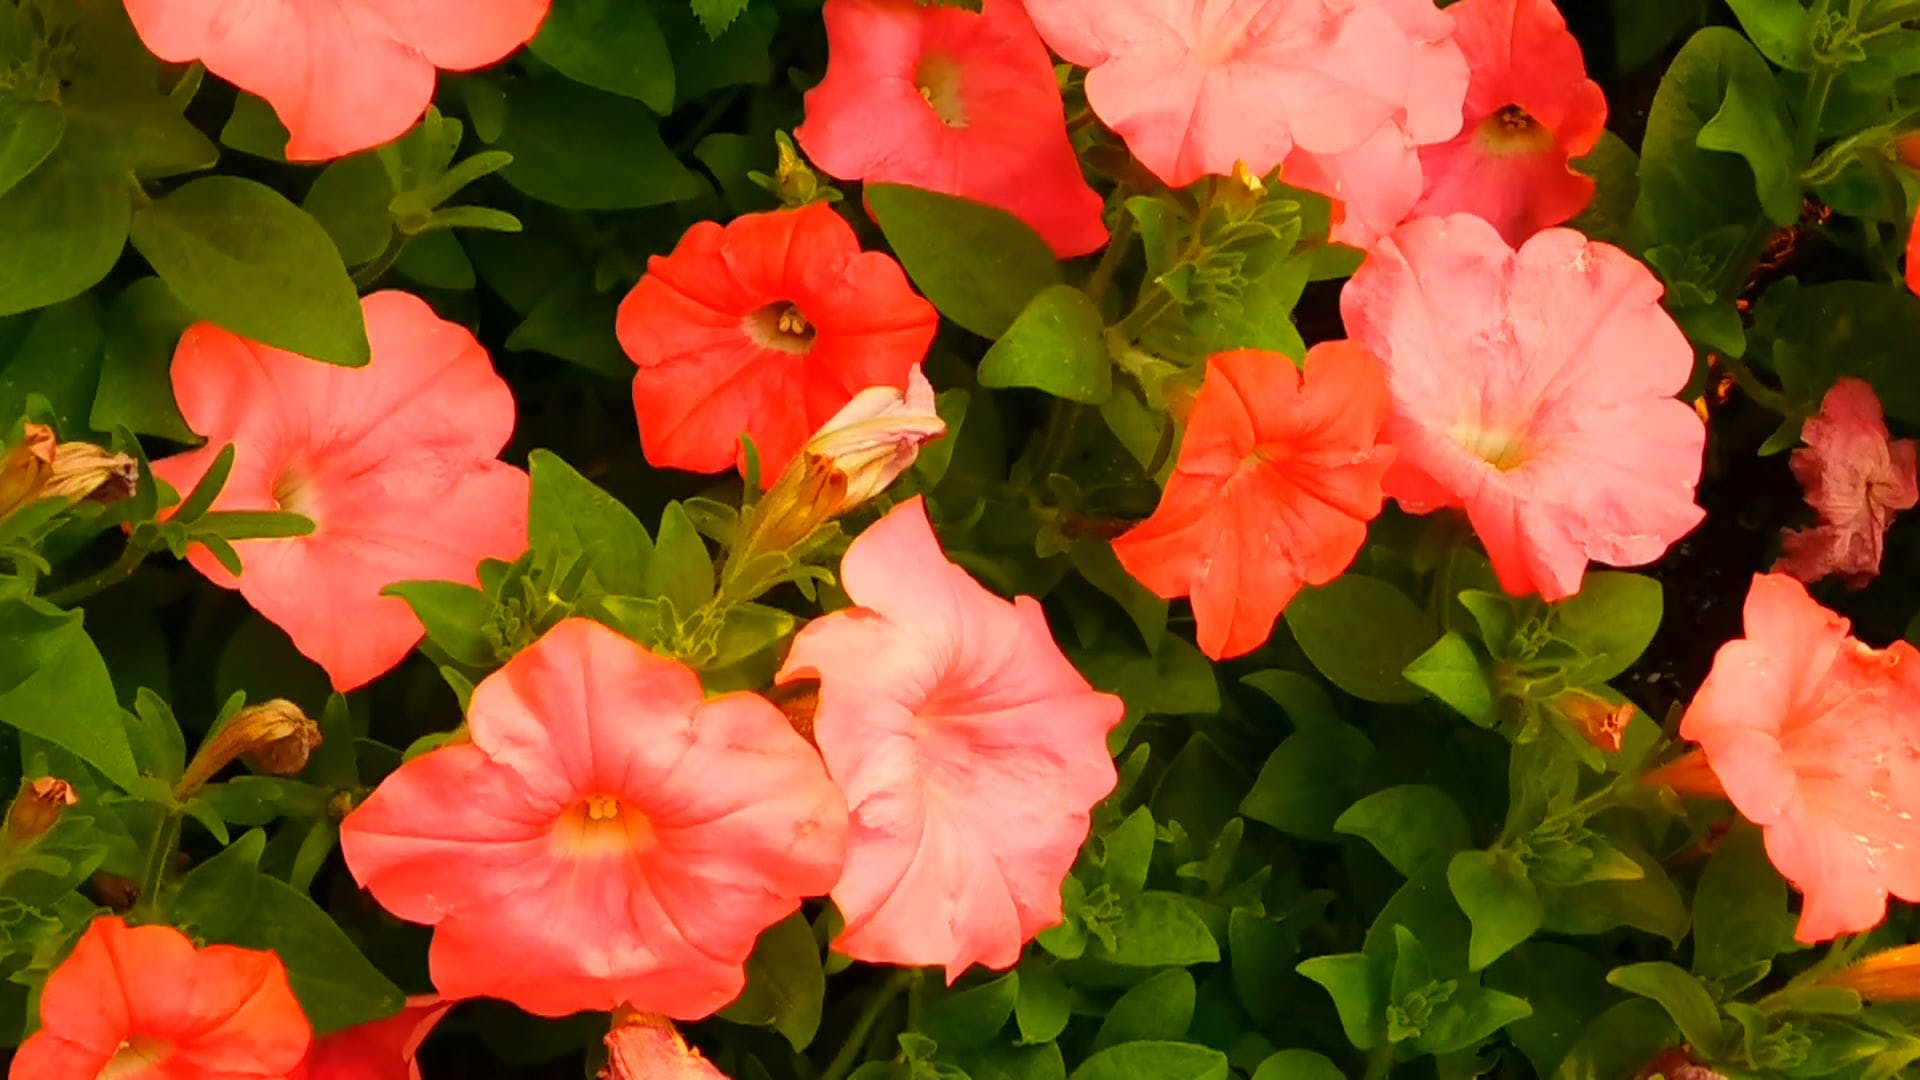 Close-Up Video of Petunia Flowers